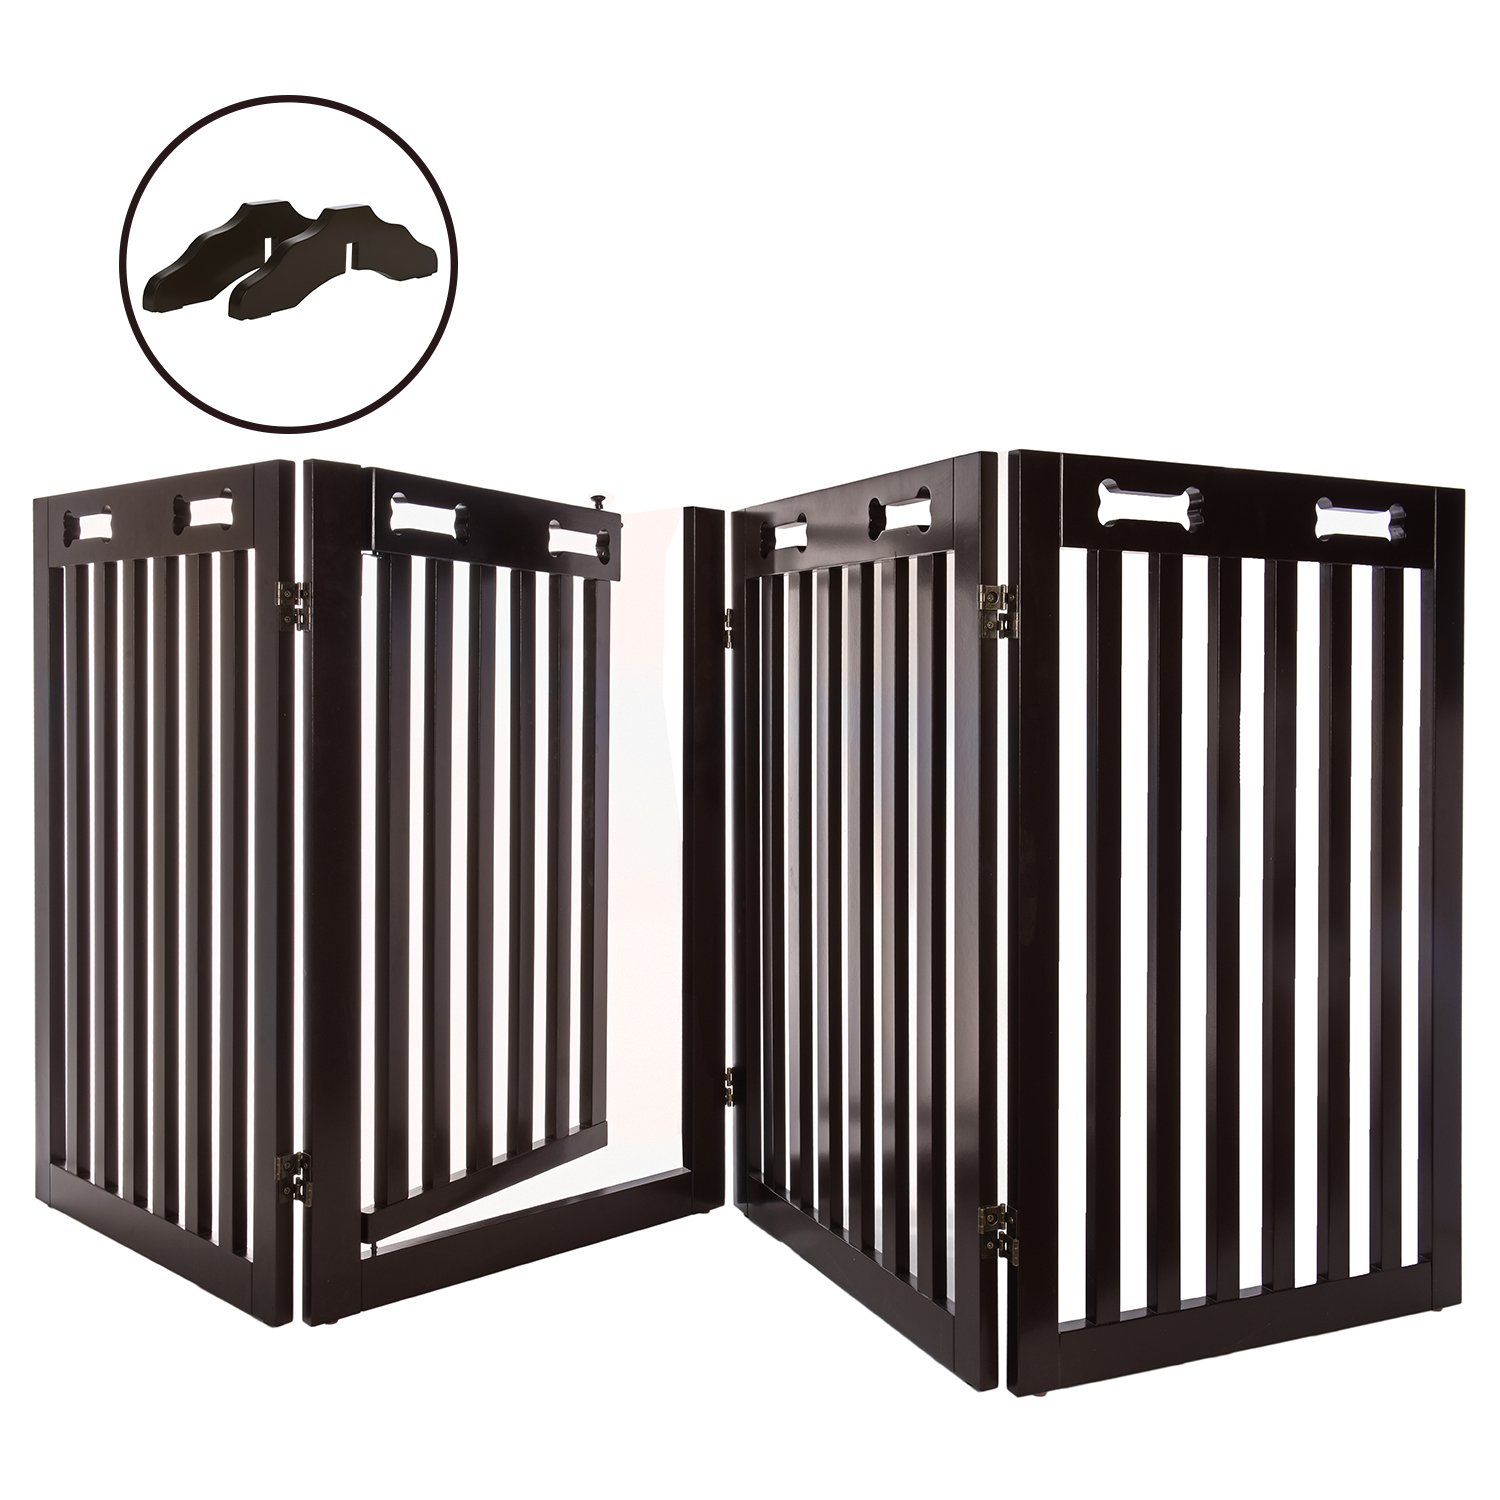 Arf Pets Free Standing Wood Dog Gate with Walk Through Door, Expands Up To 80'' Wide, 31.5'' High - BONUS Set of Foot Supporters Included